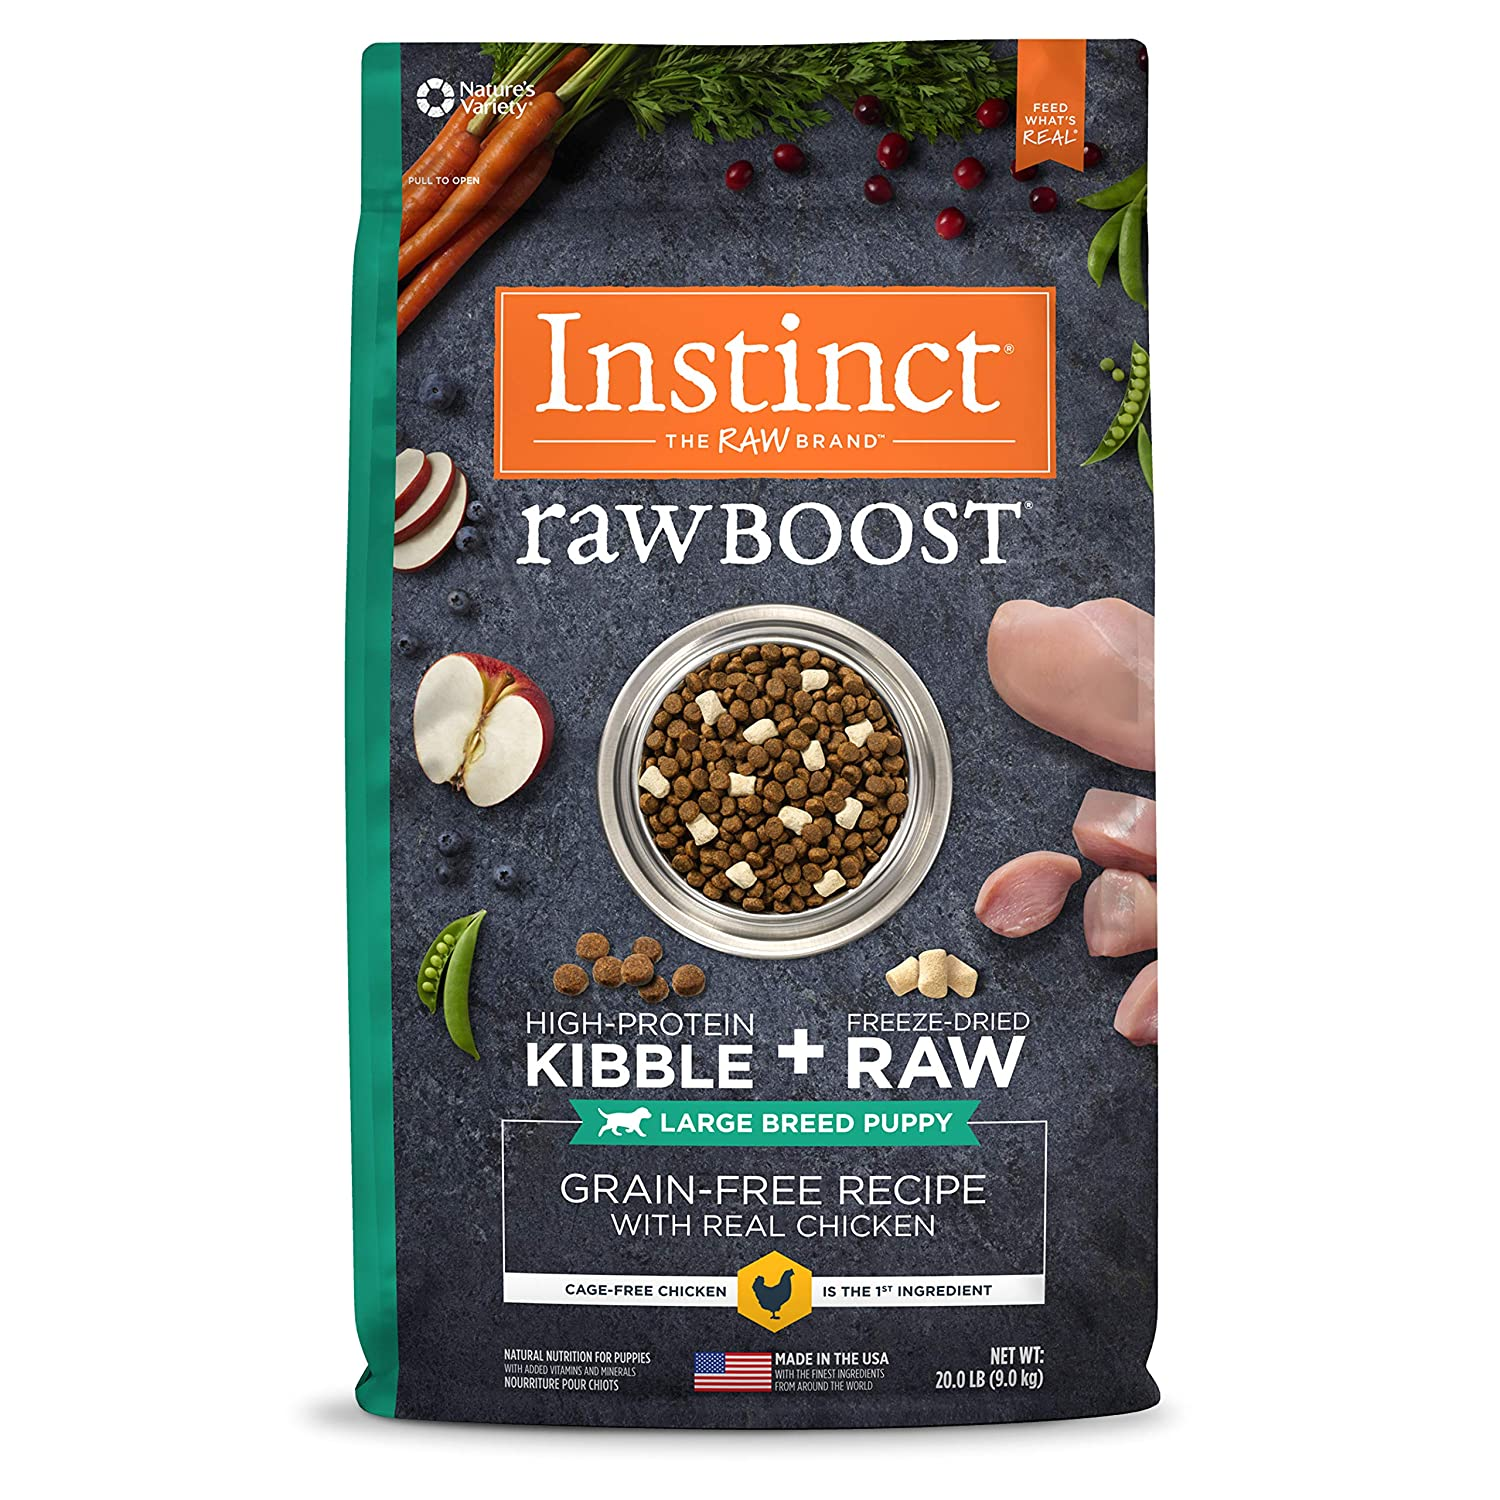 Instinct Puppy Grain-Free Recipe Natural Dry Dog Food